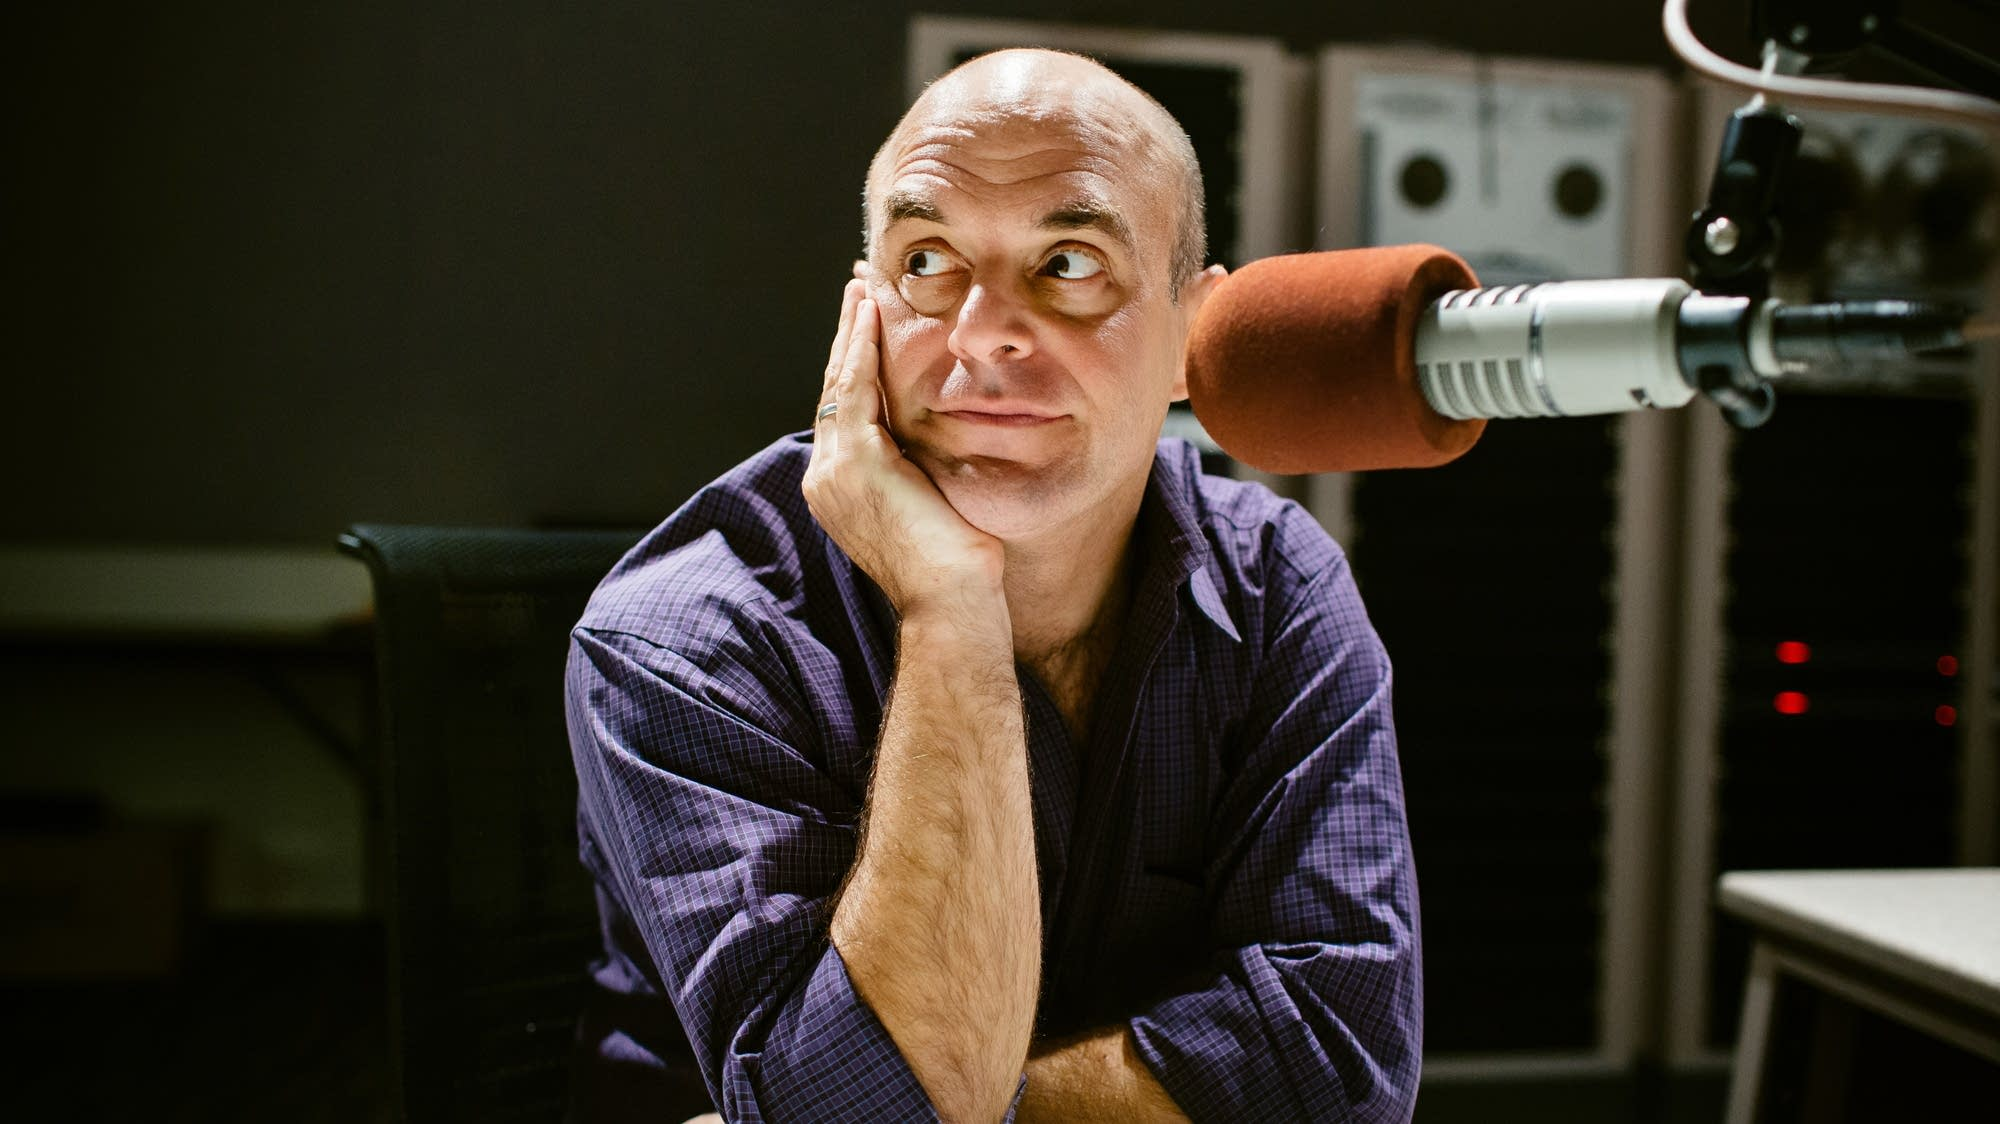 Peter Sagal portrait. Photo by Andrew Collings.